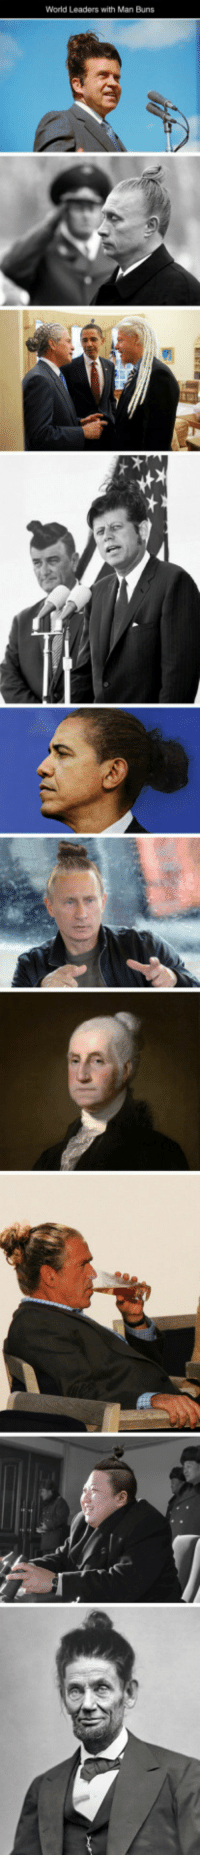 <p>Leaders With Man Buns.</p>: World Leaders with Man Buns <p>Leaders With Man Buns.</p>